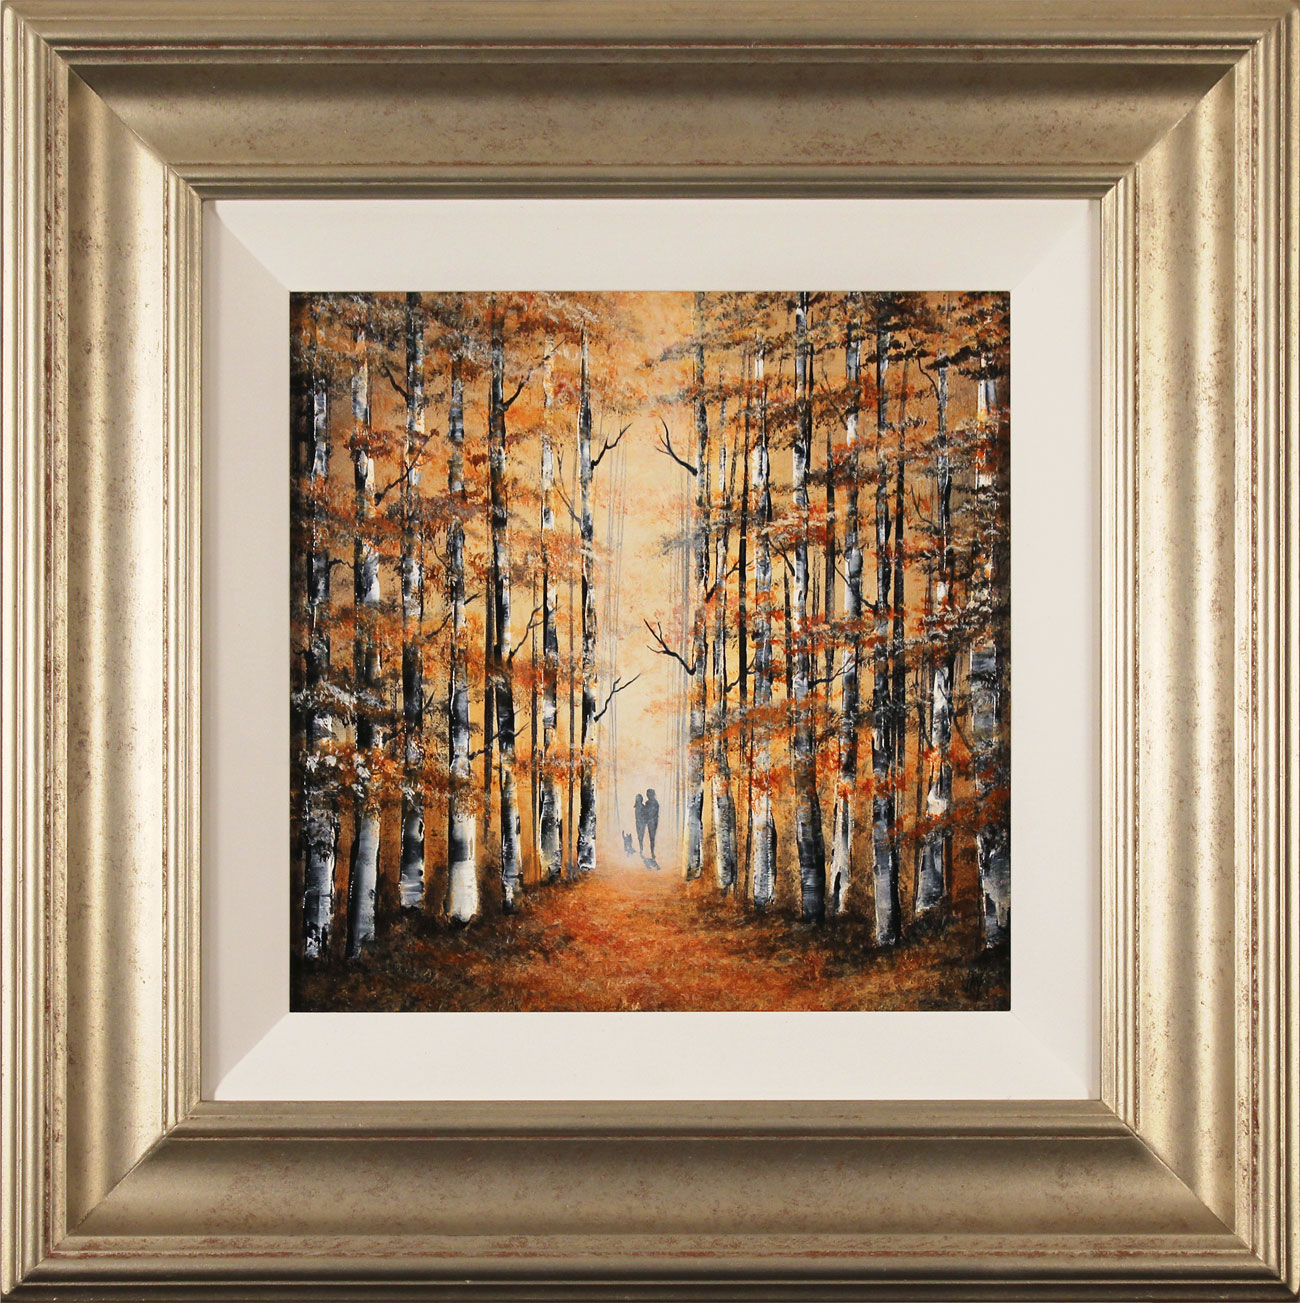 Jay Nottingham, Original oil painting on panel, Autumn Stroll, click to enlarge